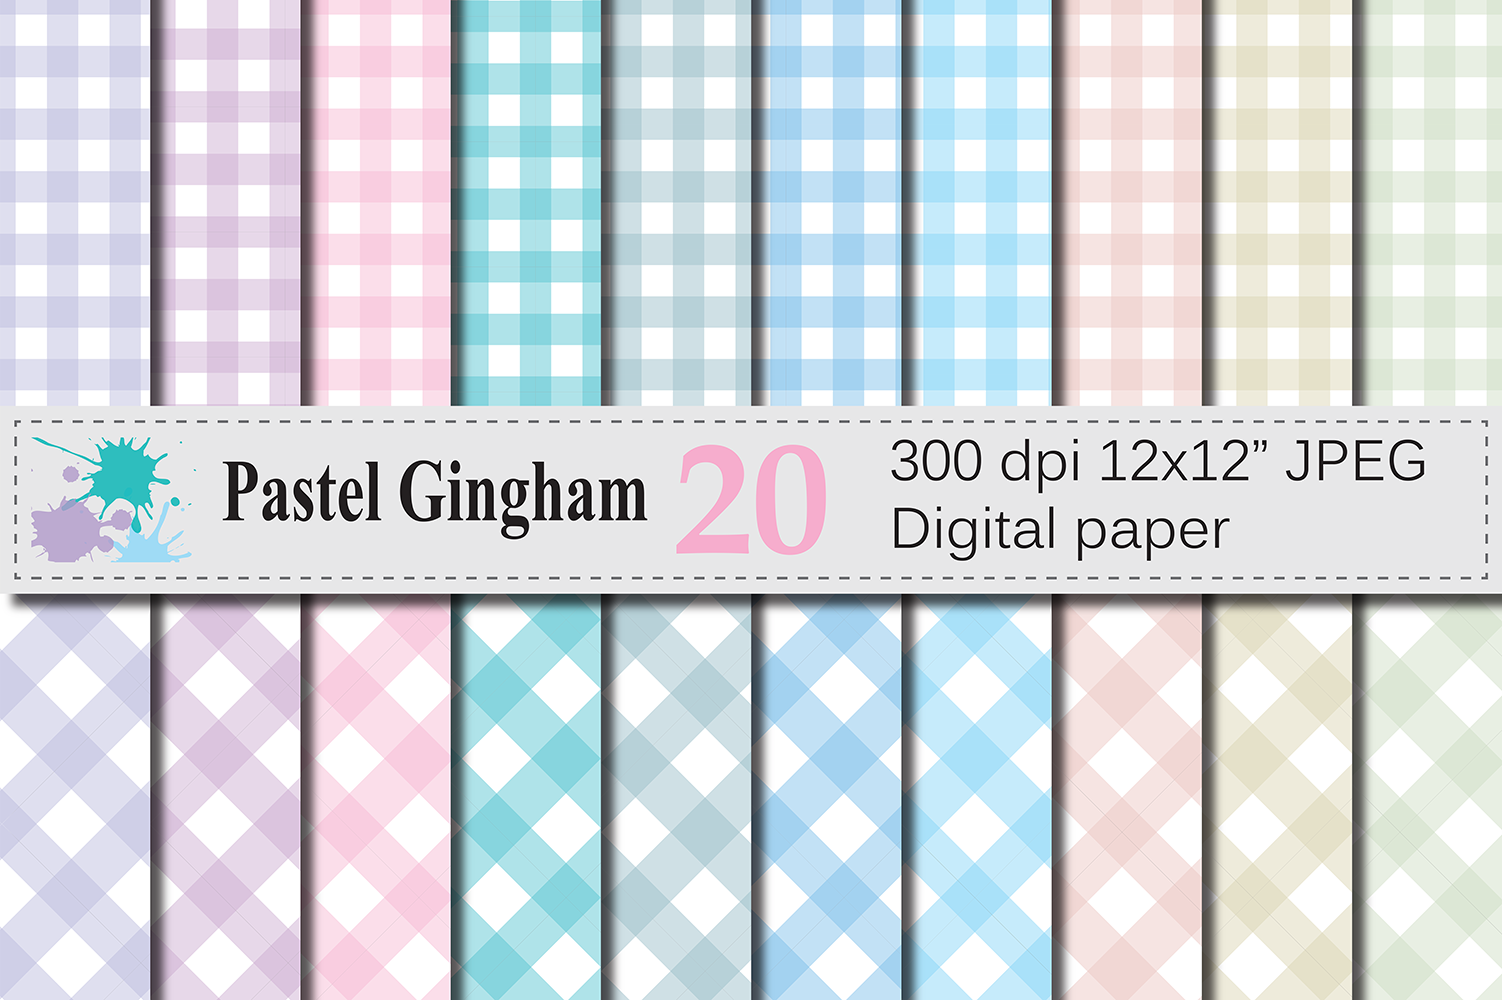 Download Free Pastel Gingham Digital Papers Graphic By Vr Digital Design for Cricut Explore, Silhouette and other cutting machines.